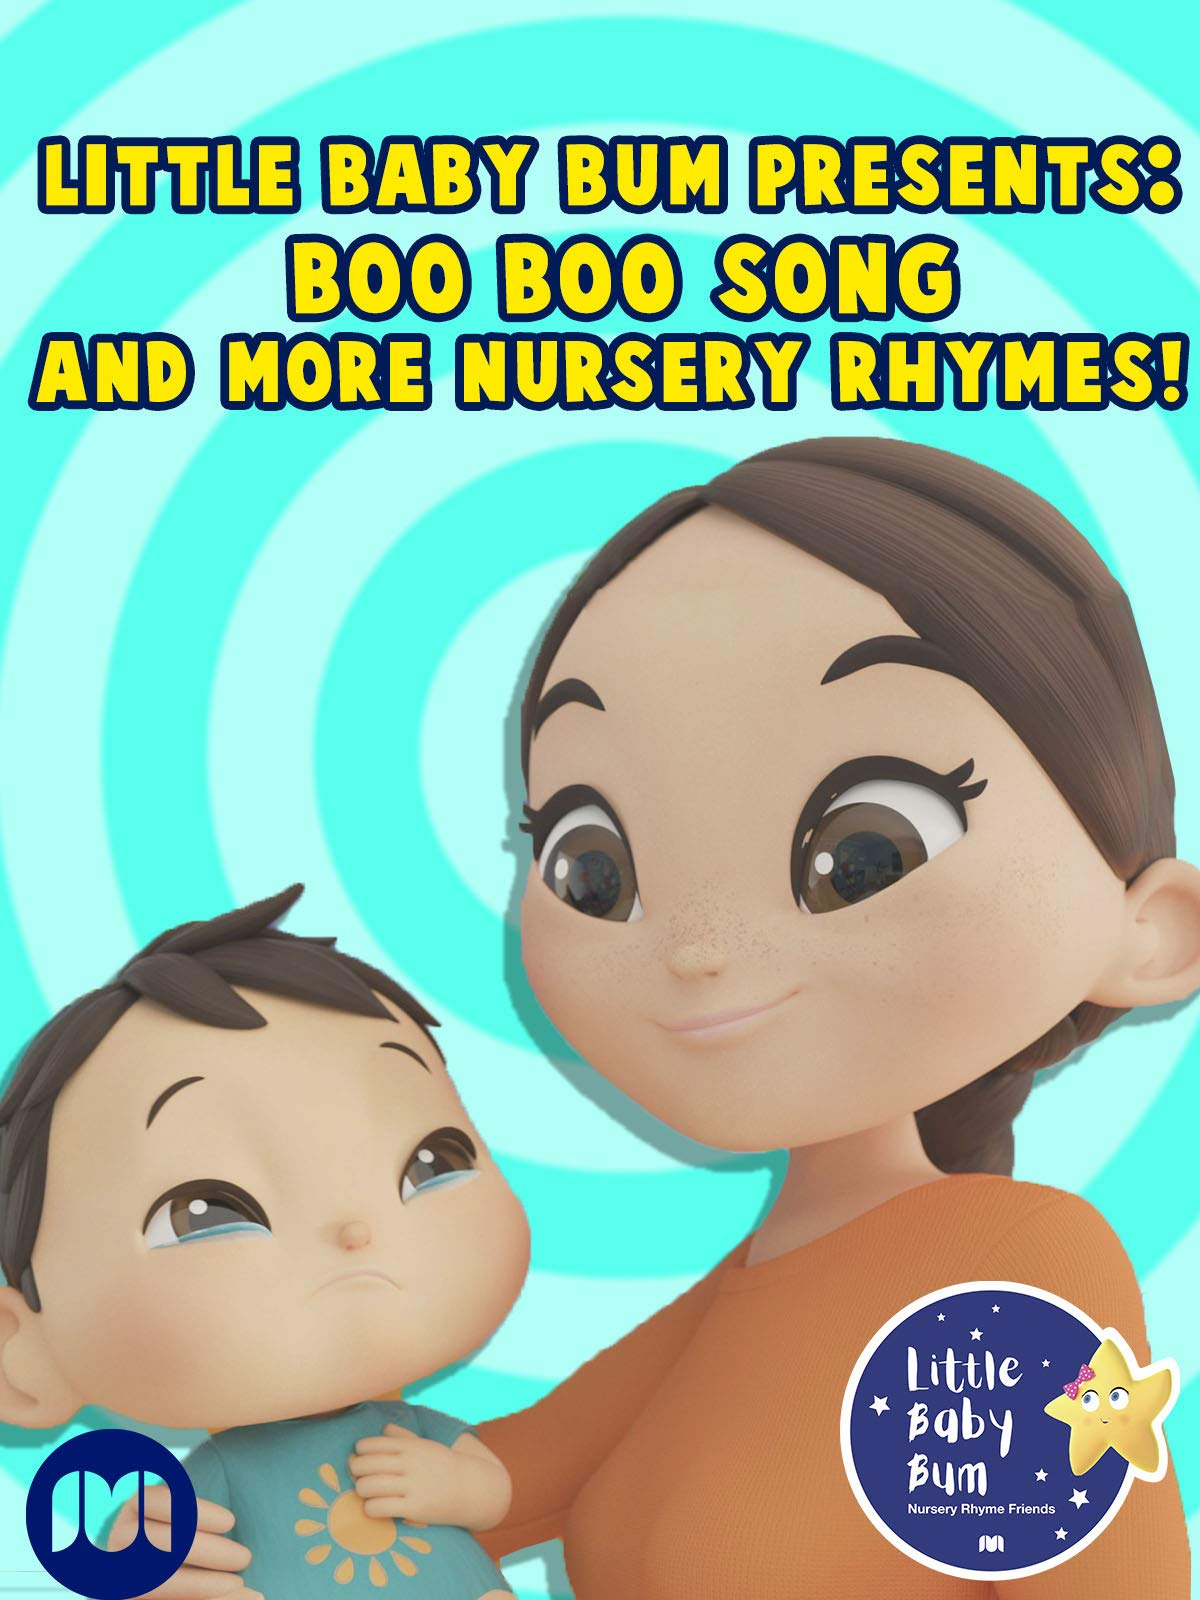 Watch Little Baby Bum Presents: Boo Boo Song and More Nursery Rhymes! on Amazon Prime Instant Video UK